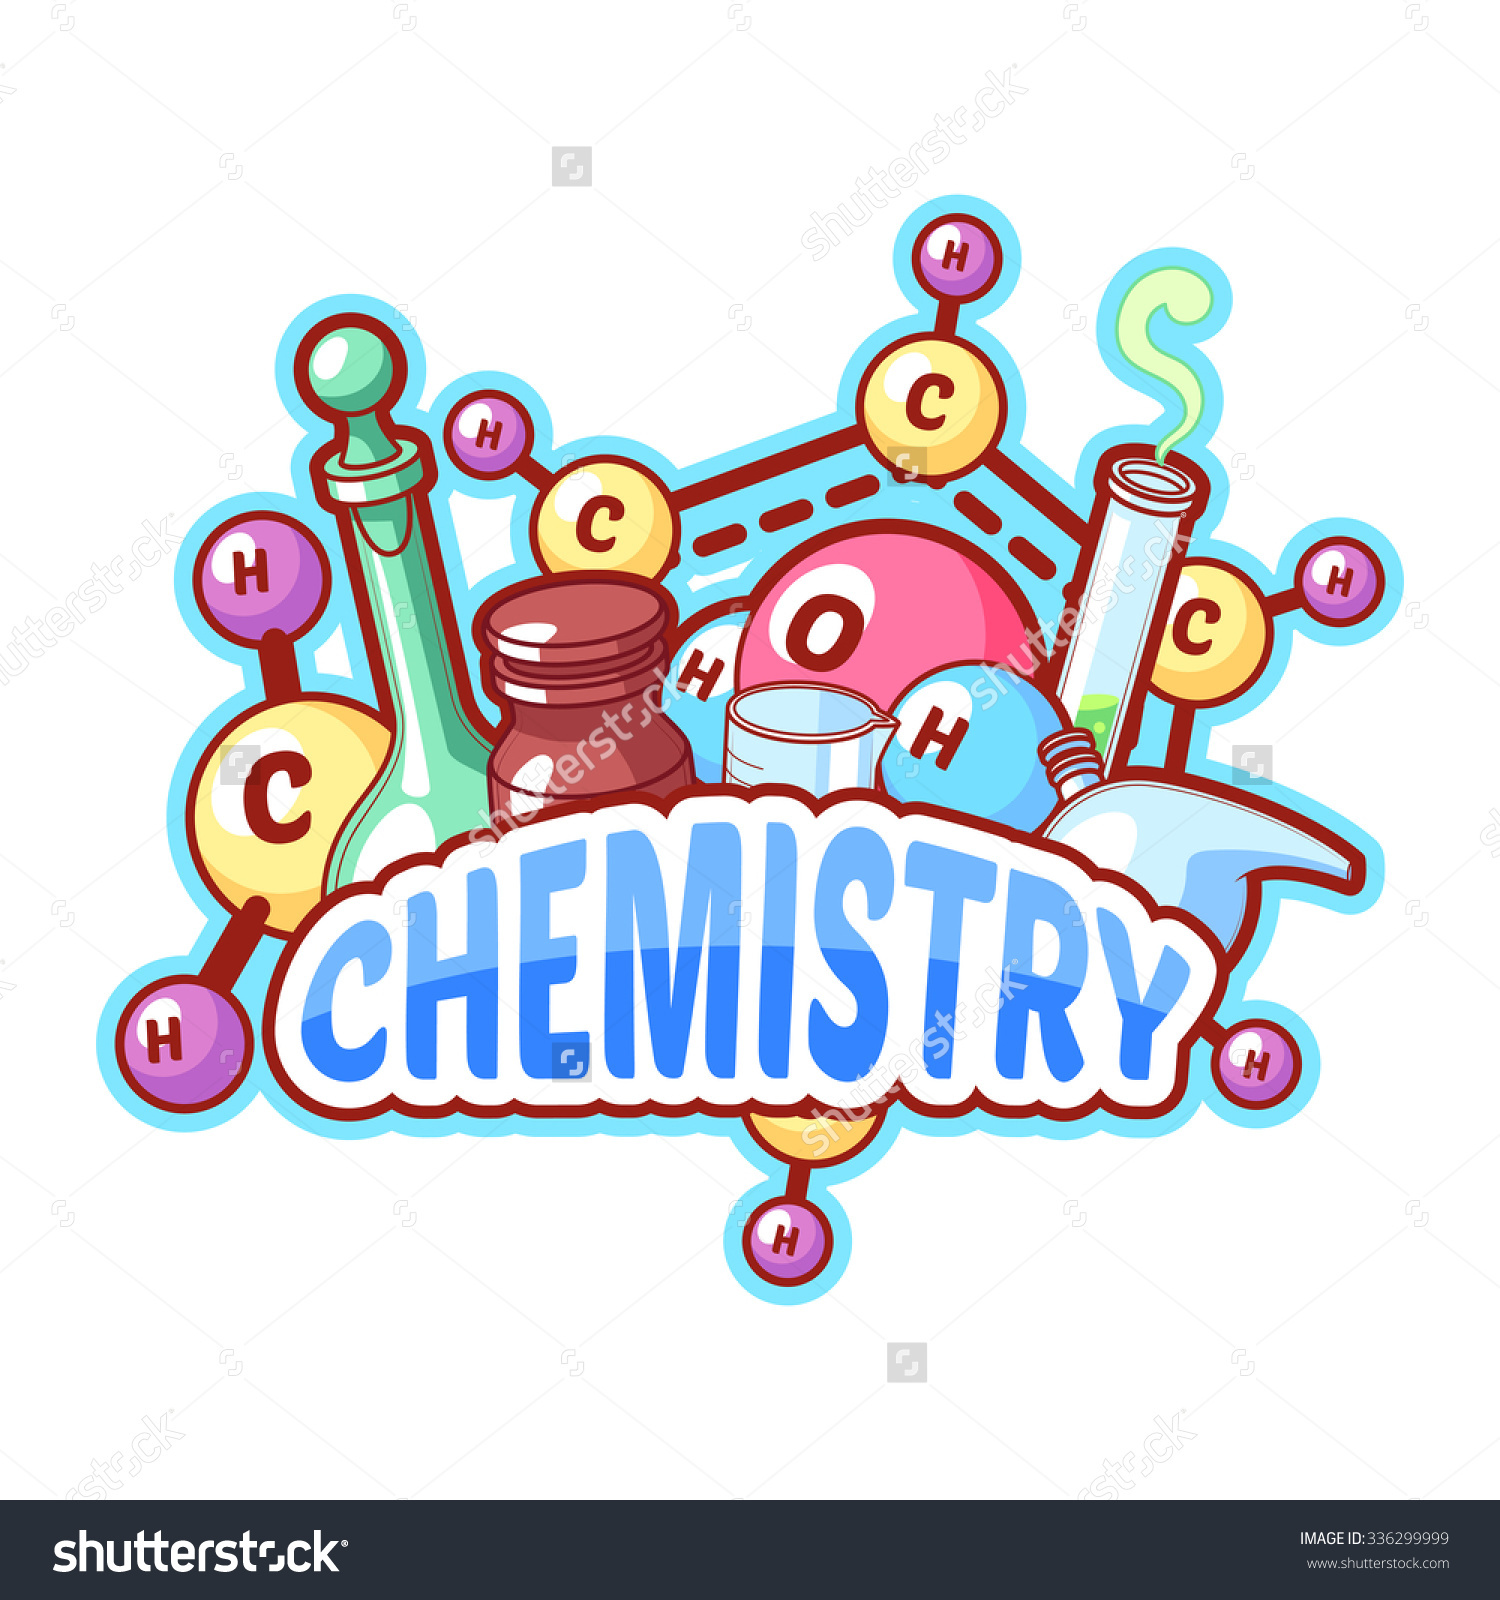 Chemistry Title Chemical Elements Flasks On Stock Vector 336299999.